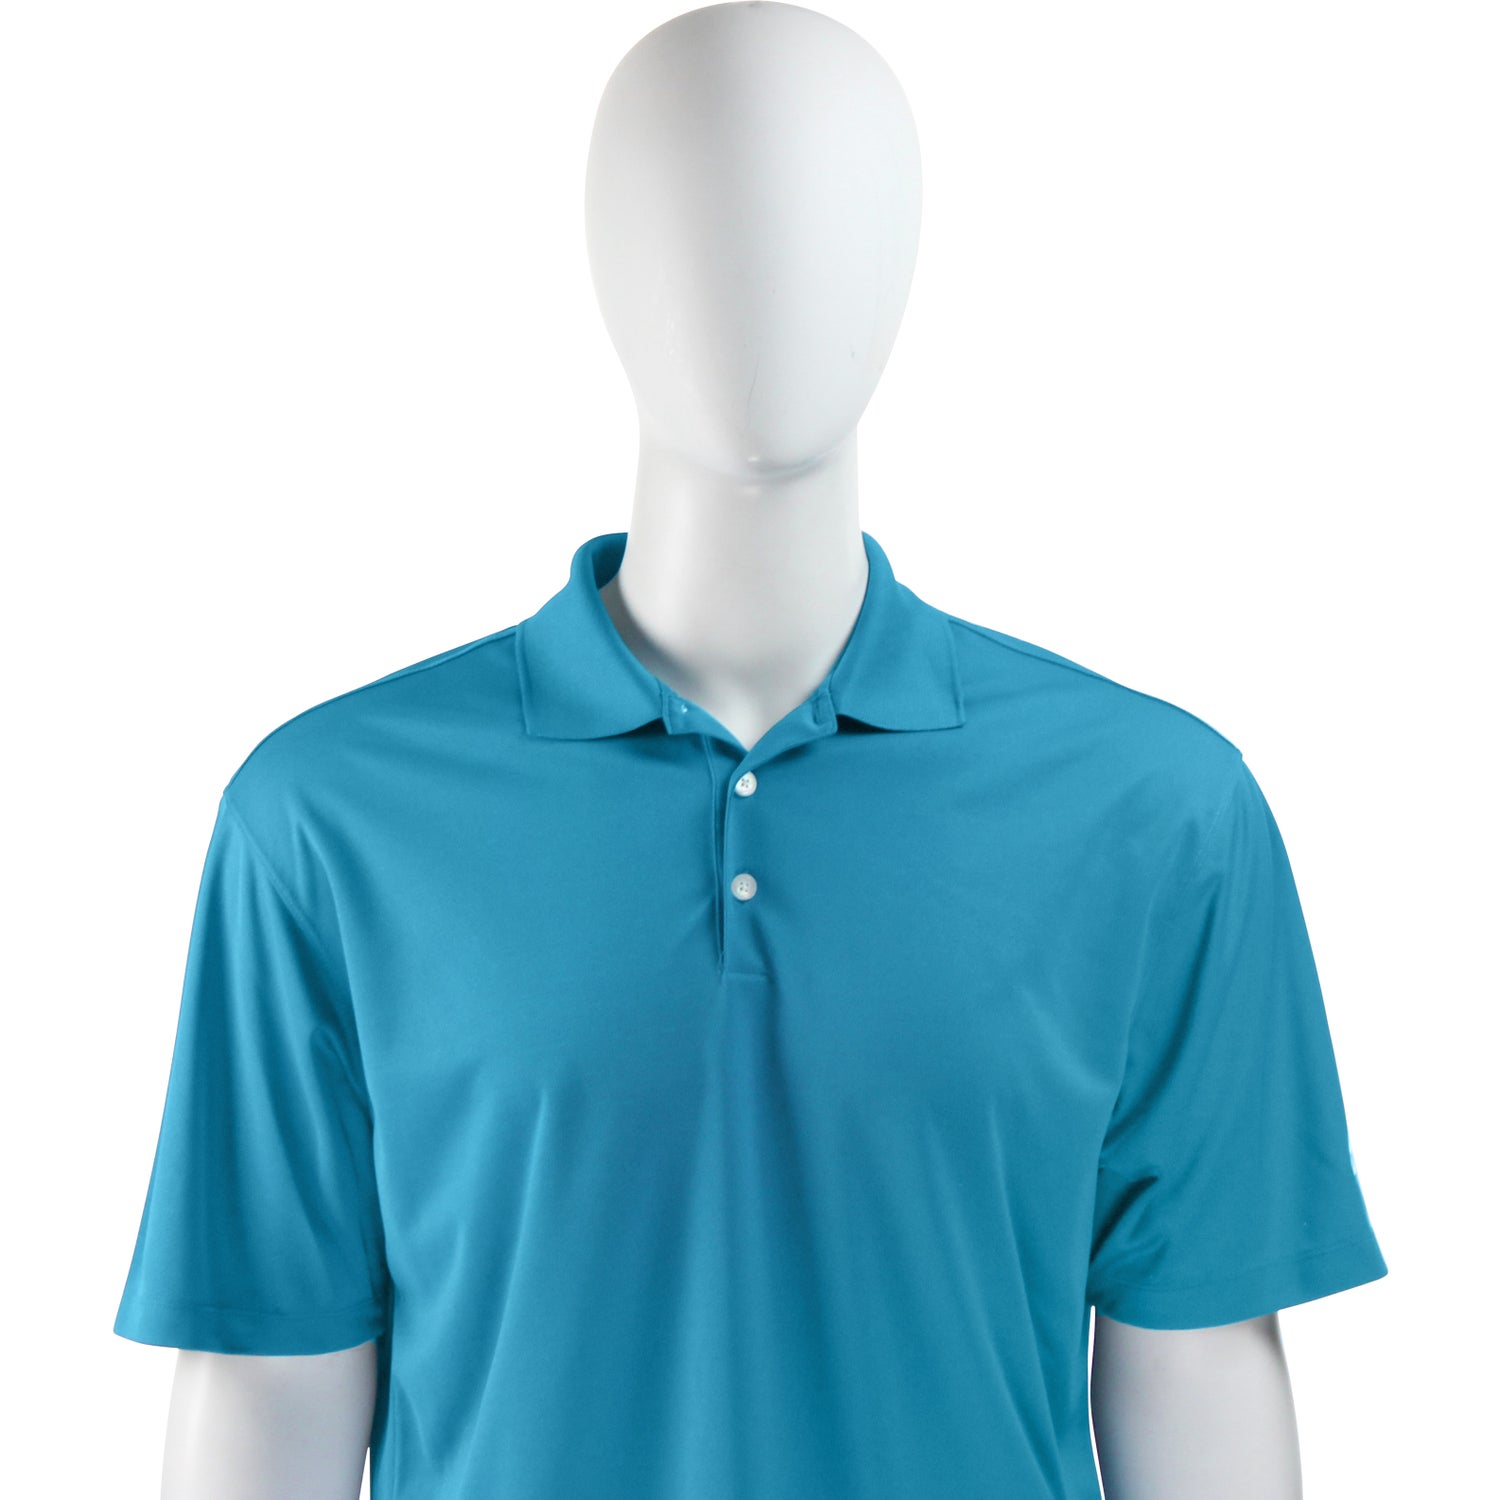 NIKE GOLF Dri-FIT Micro Pique Polo Shirt | Embroidered ...